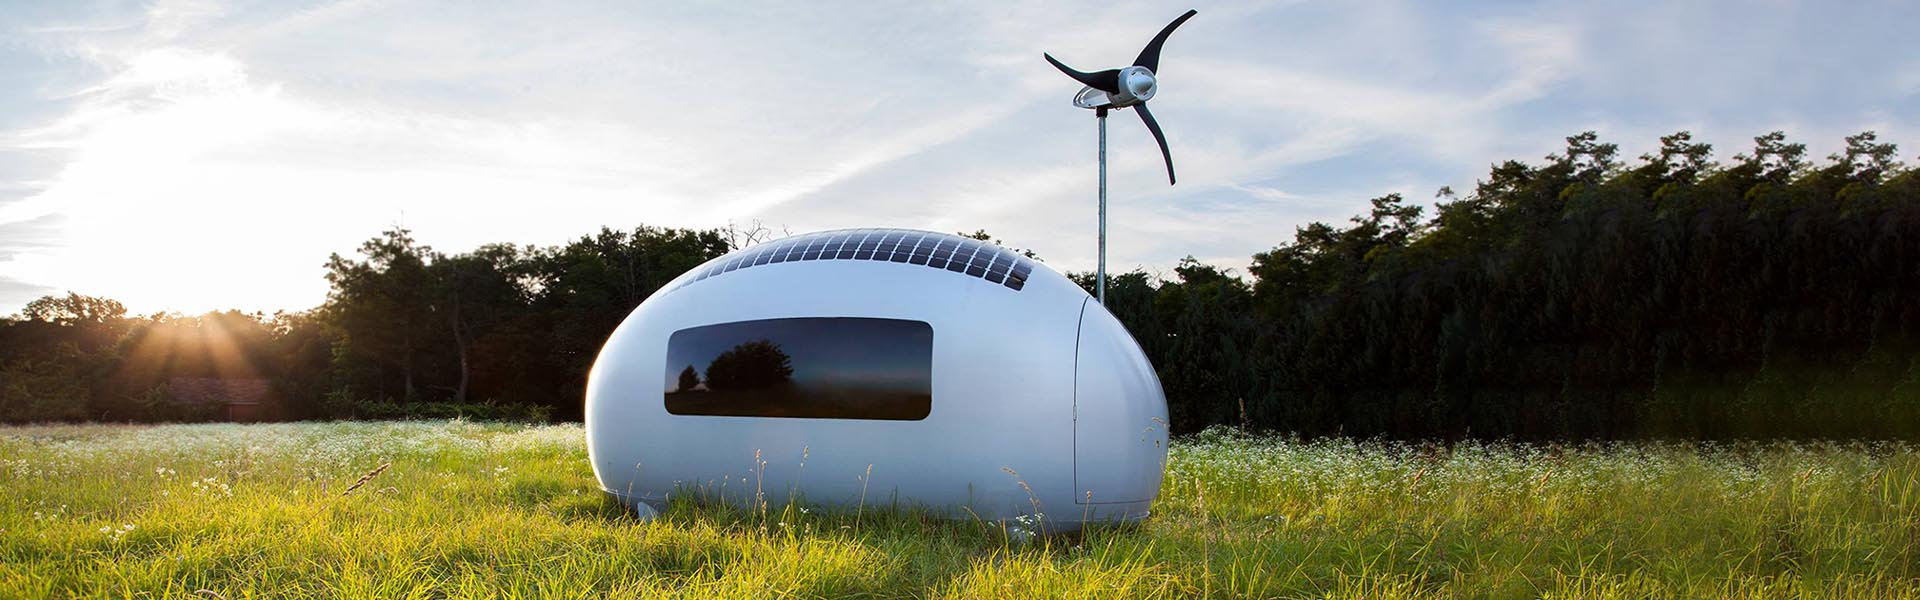 Nation - Ecocapsule: una casa portátil y sustentable